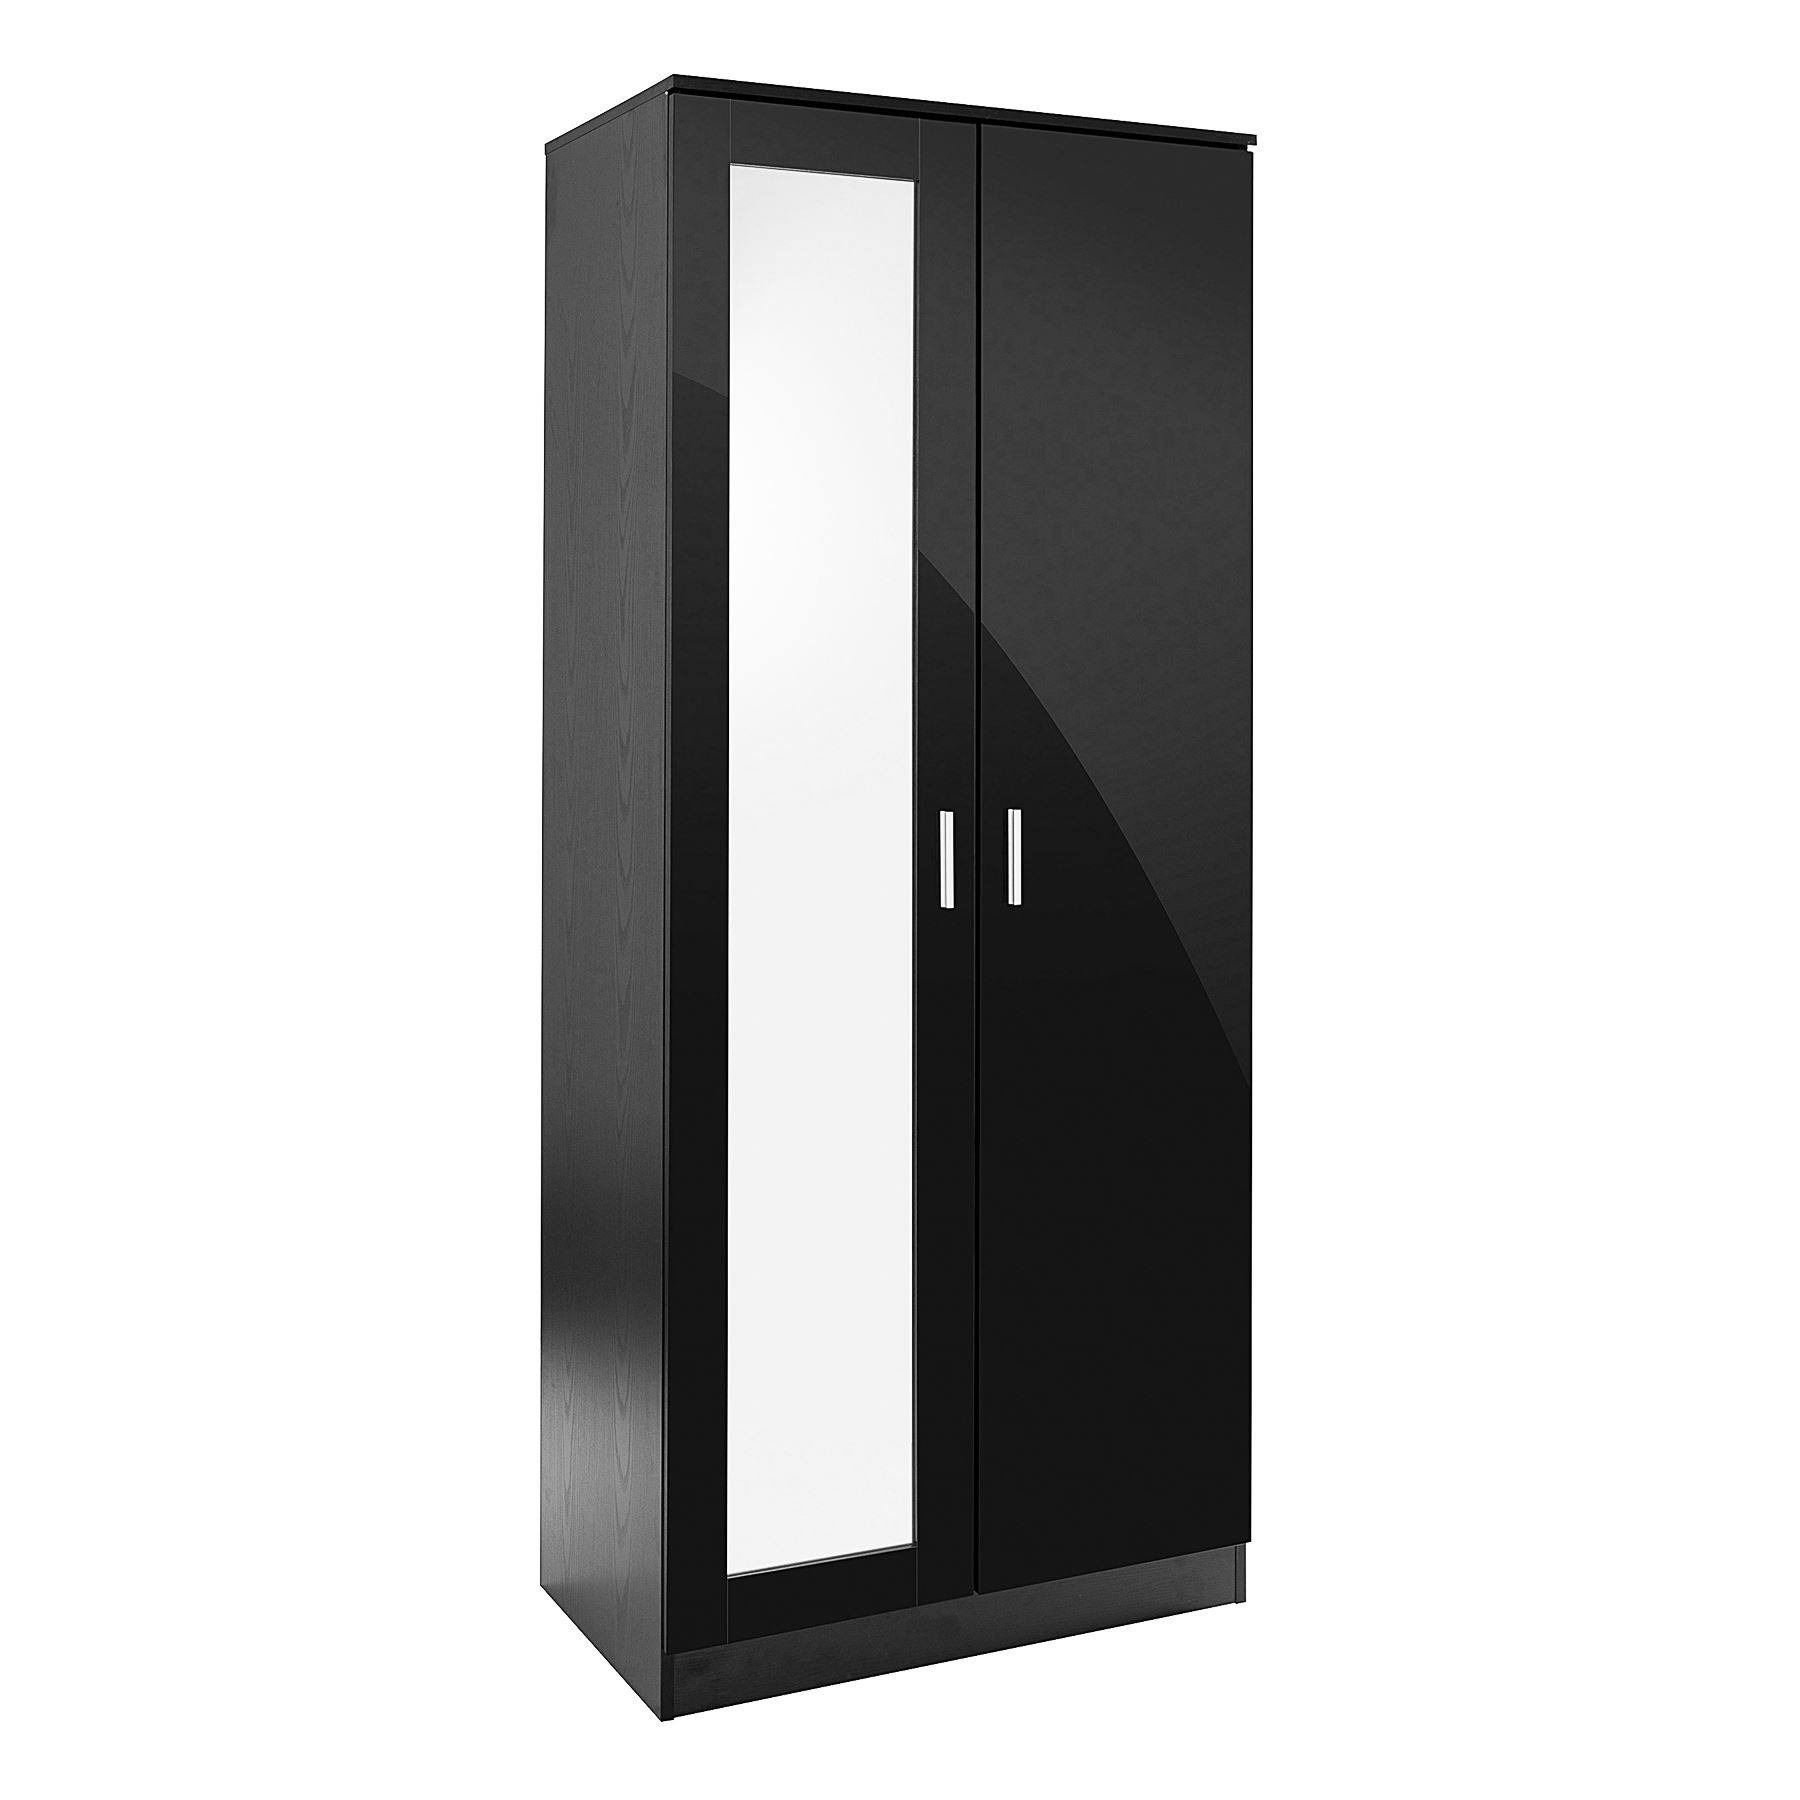 Bedroom Furniture 3 Piece Set Black Gloss Wardrobe Drawer Bedside Throughout Newest Black Gloss 3 Door Wardrobes (View 8 of 15)